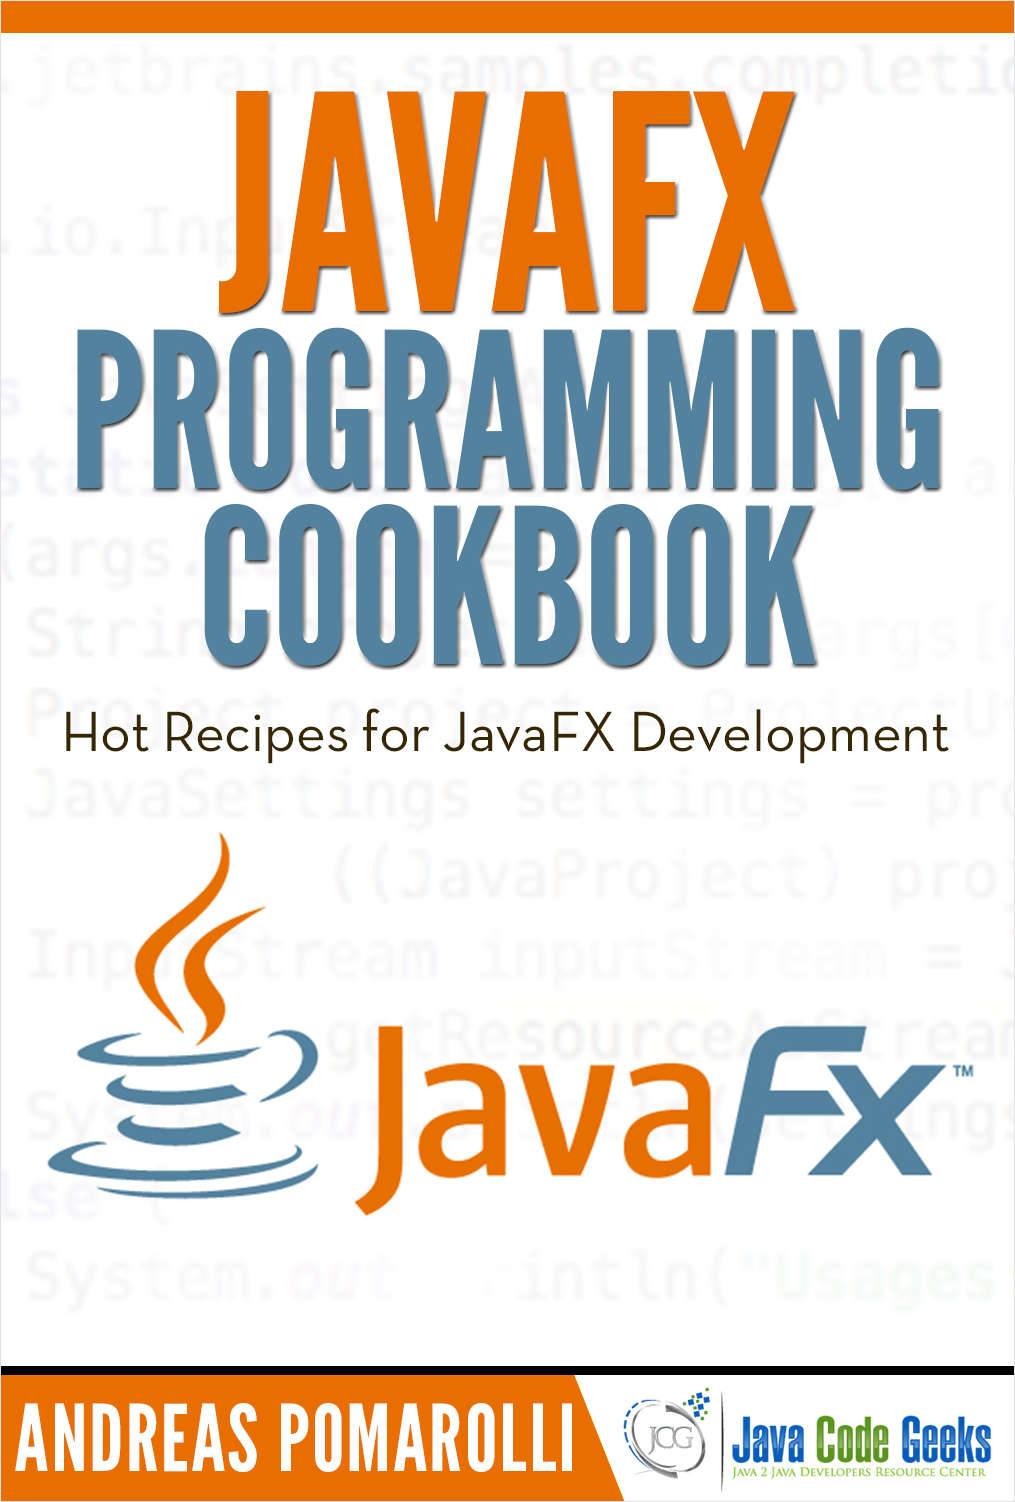 JavaFX Programming Cookbook